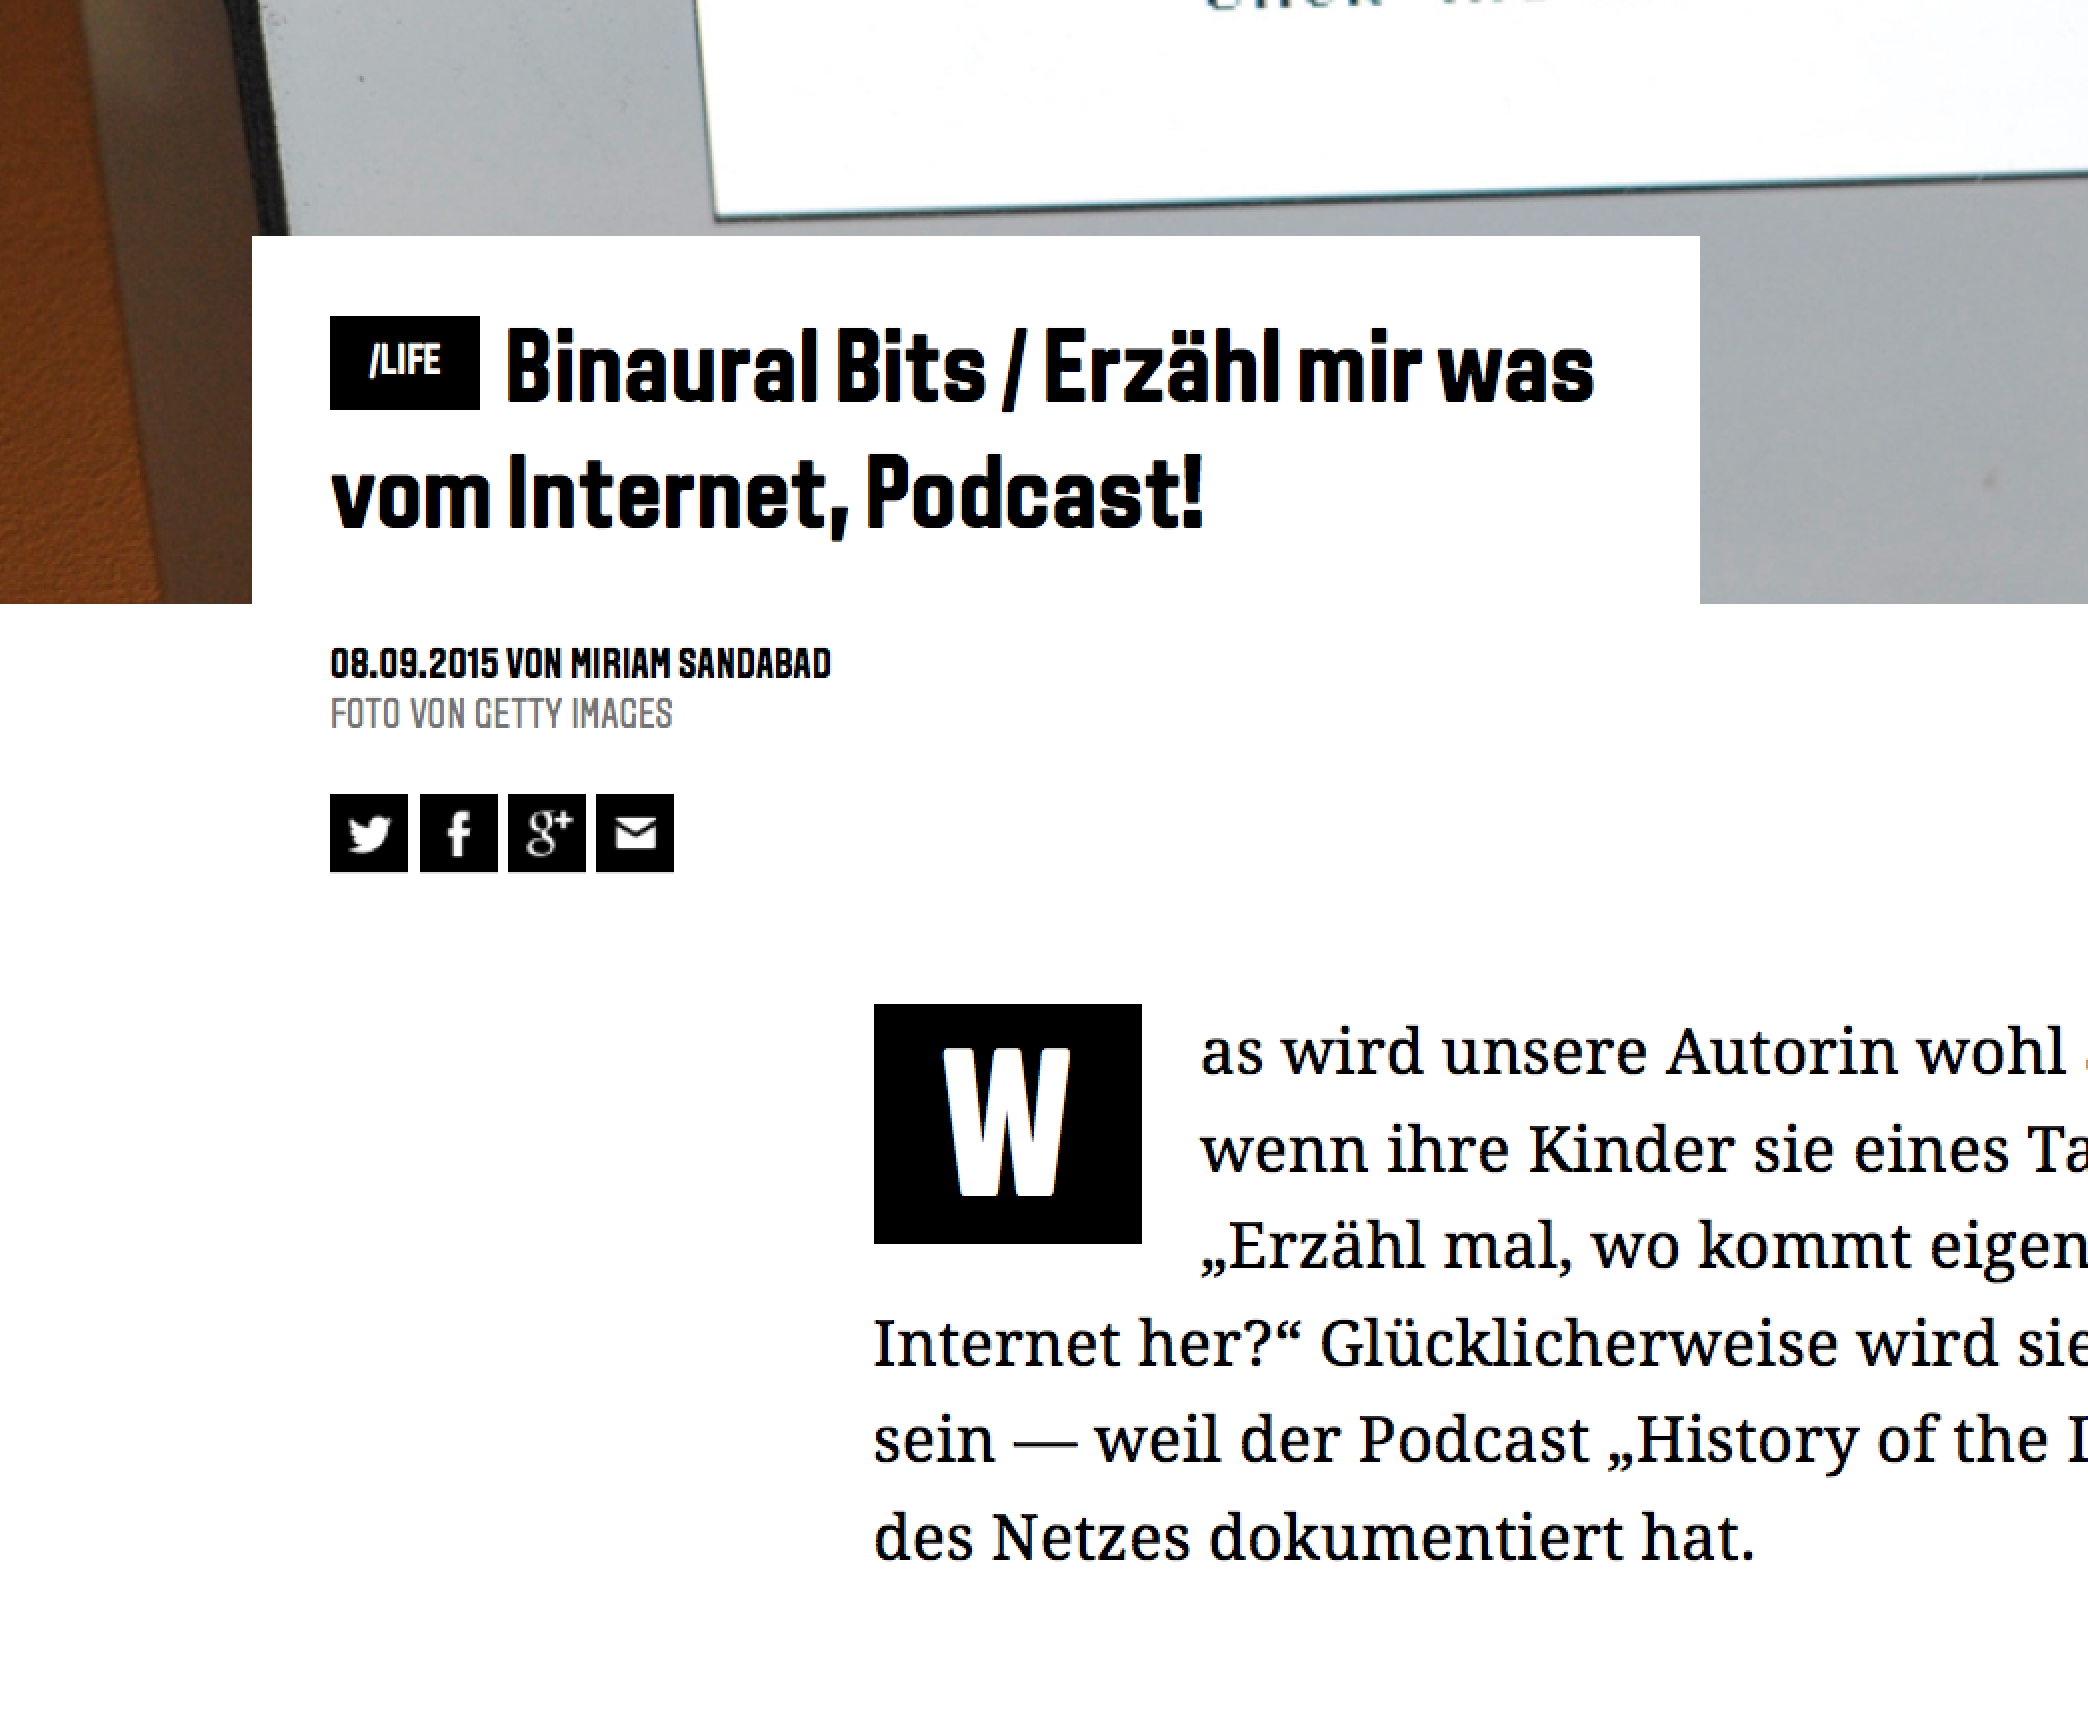 Podcast Featured in Wired Germany Today | Internet History Podcast